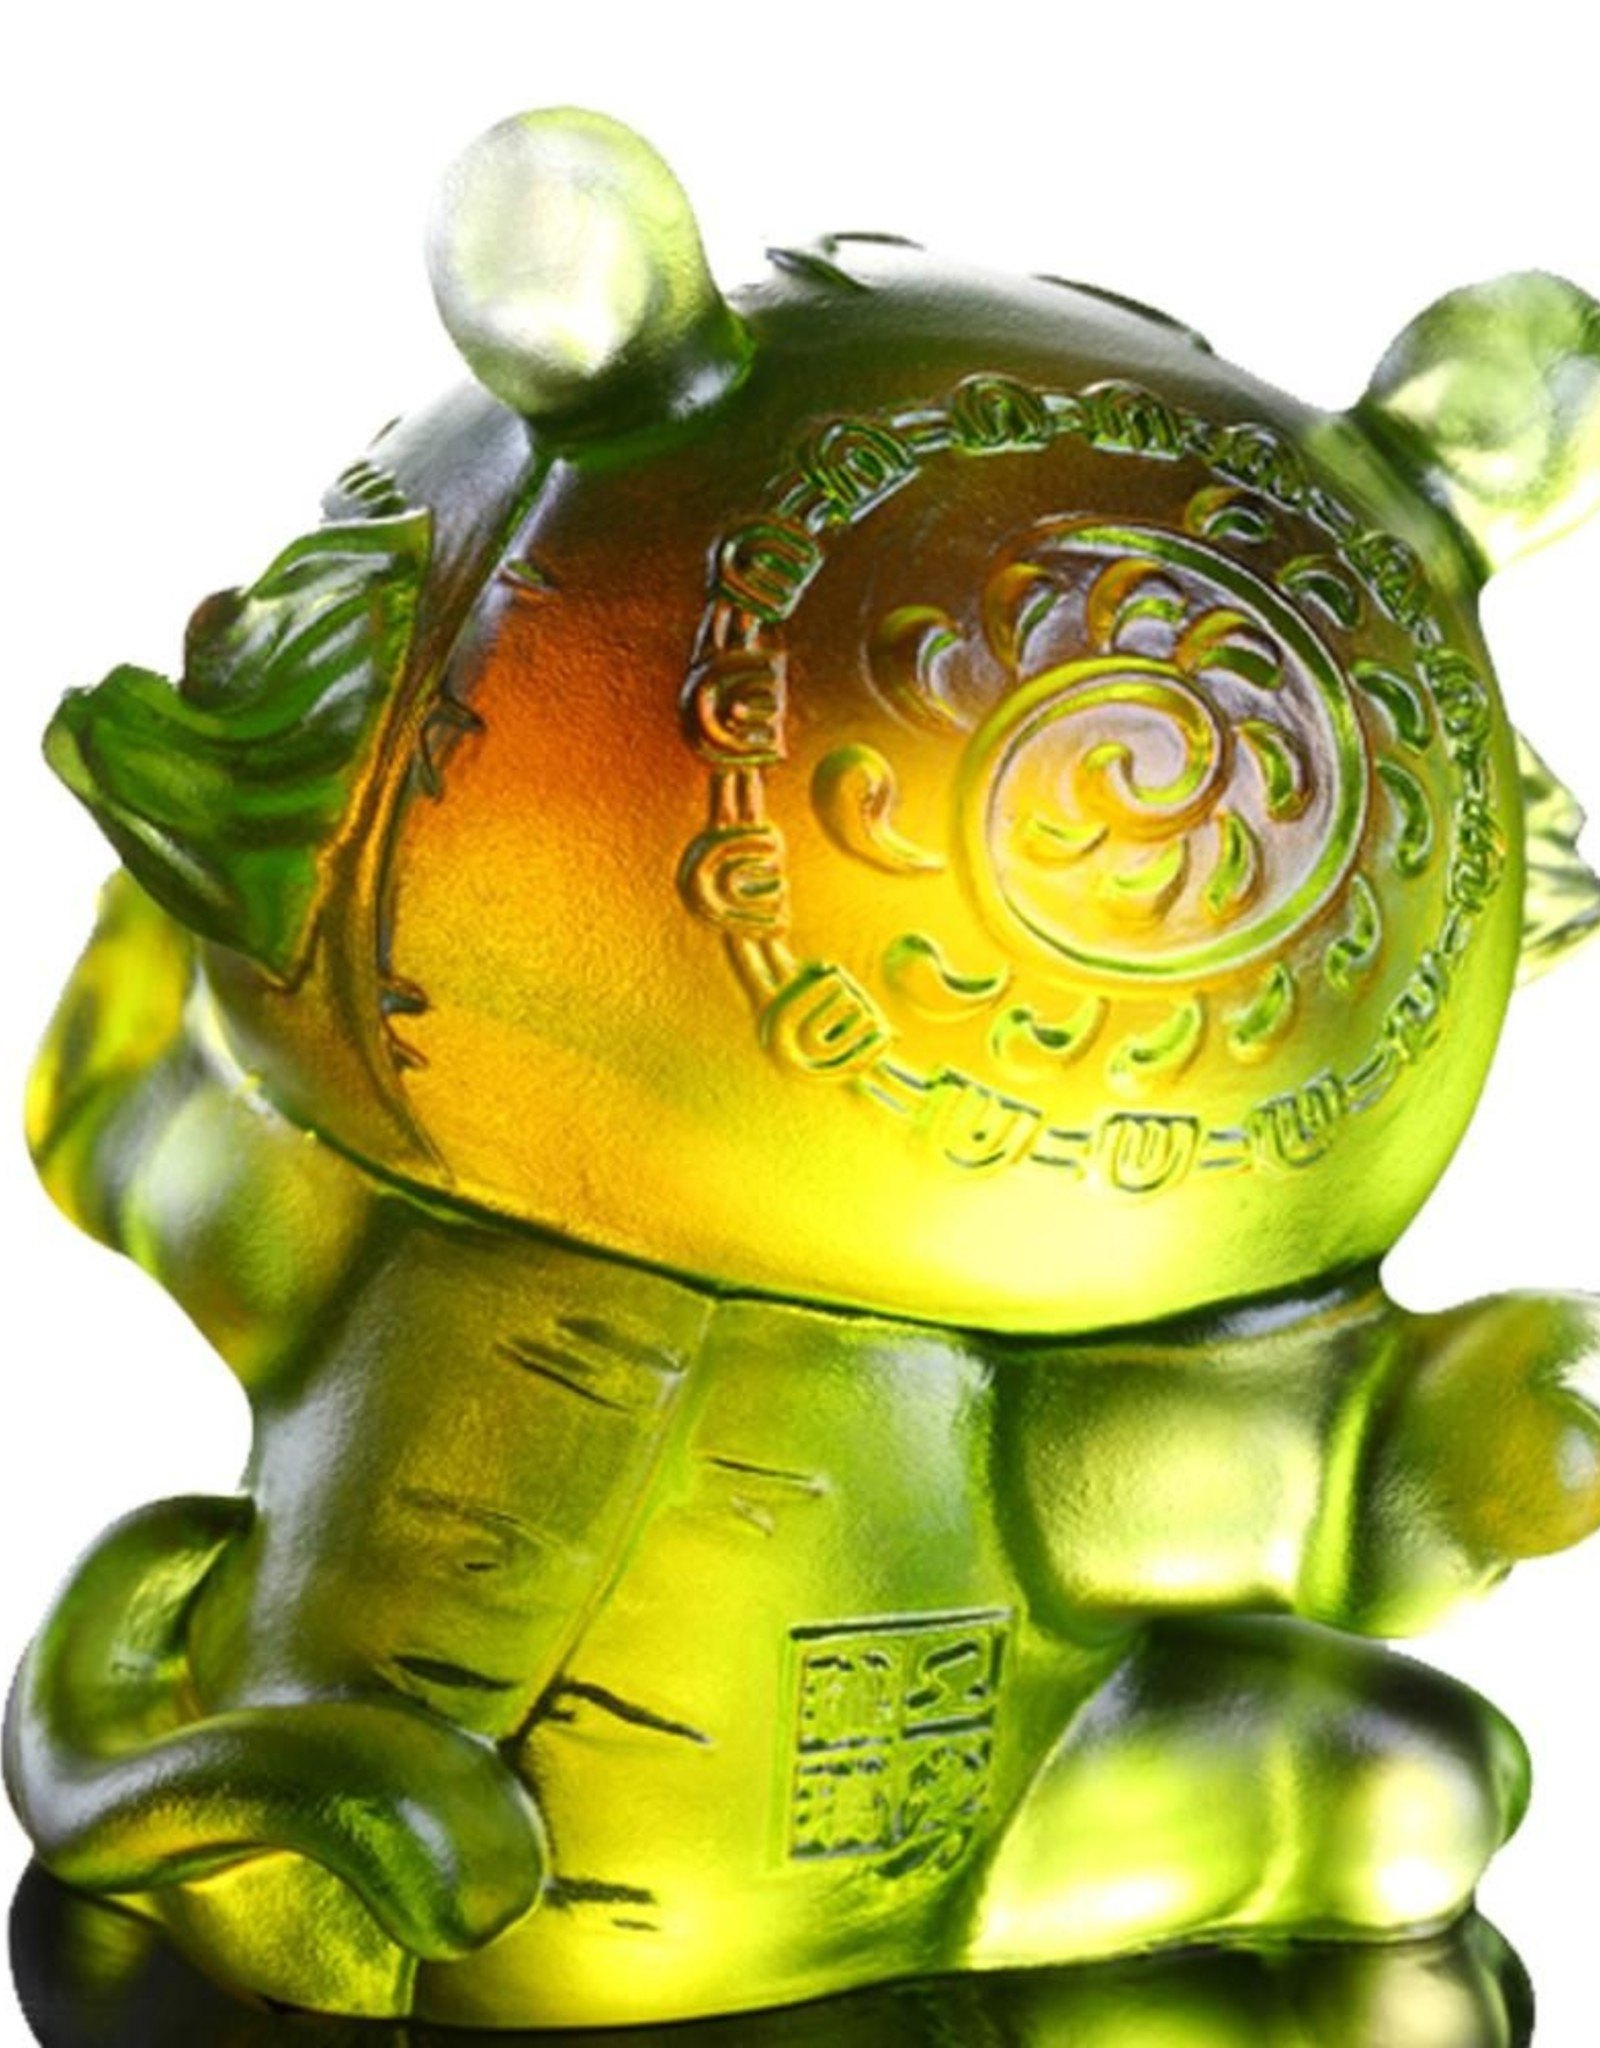 """LIULI Crystal Art Crystal Year of the Tiger """"Little Valiant One"""" Chinese Zodiac Figurine in Amber/Green Clear (Limited Edition)"""